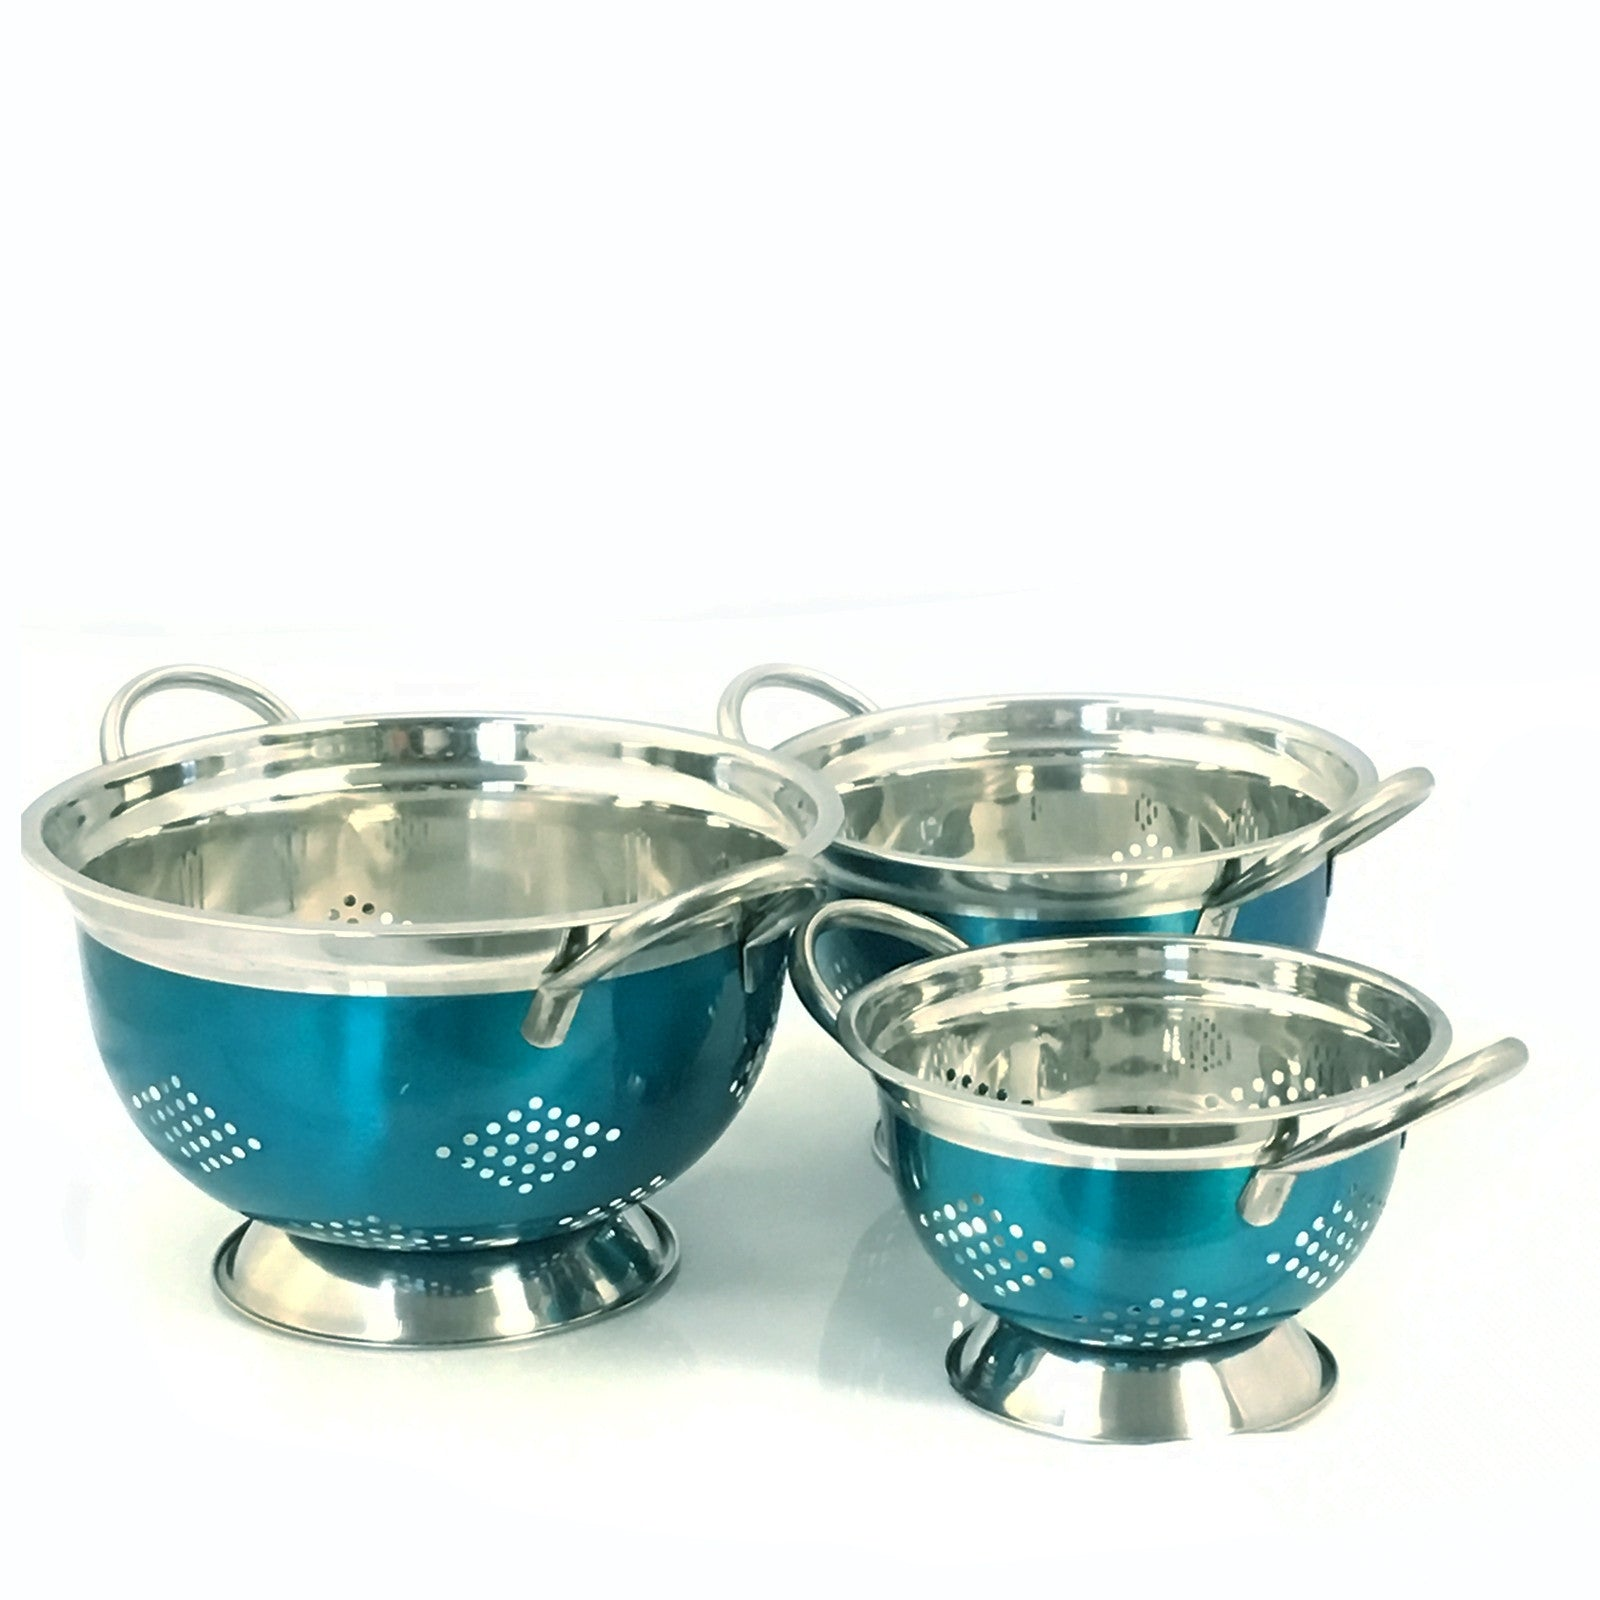 ... Oster Metaline 3 Pack Stainless Steel Asian Colander in Metallic  Turquoise ...